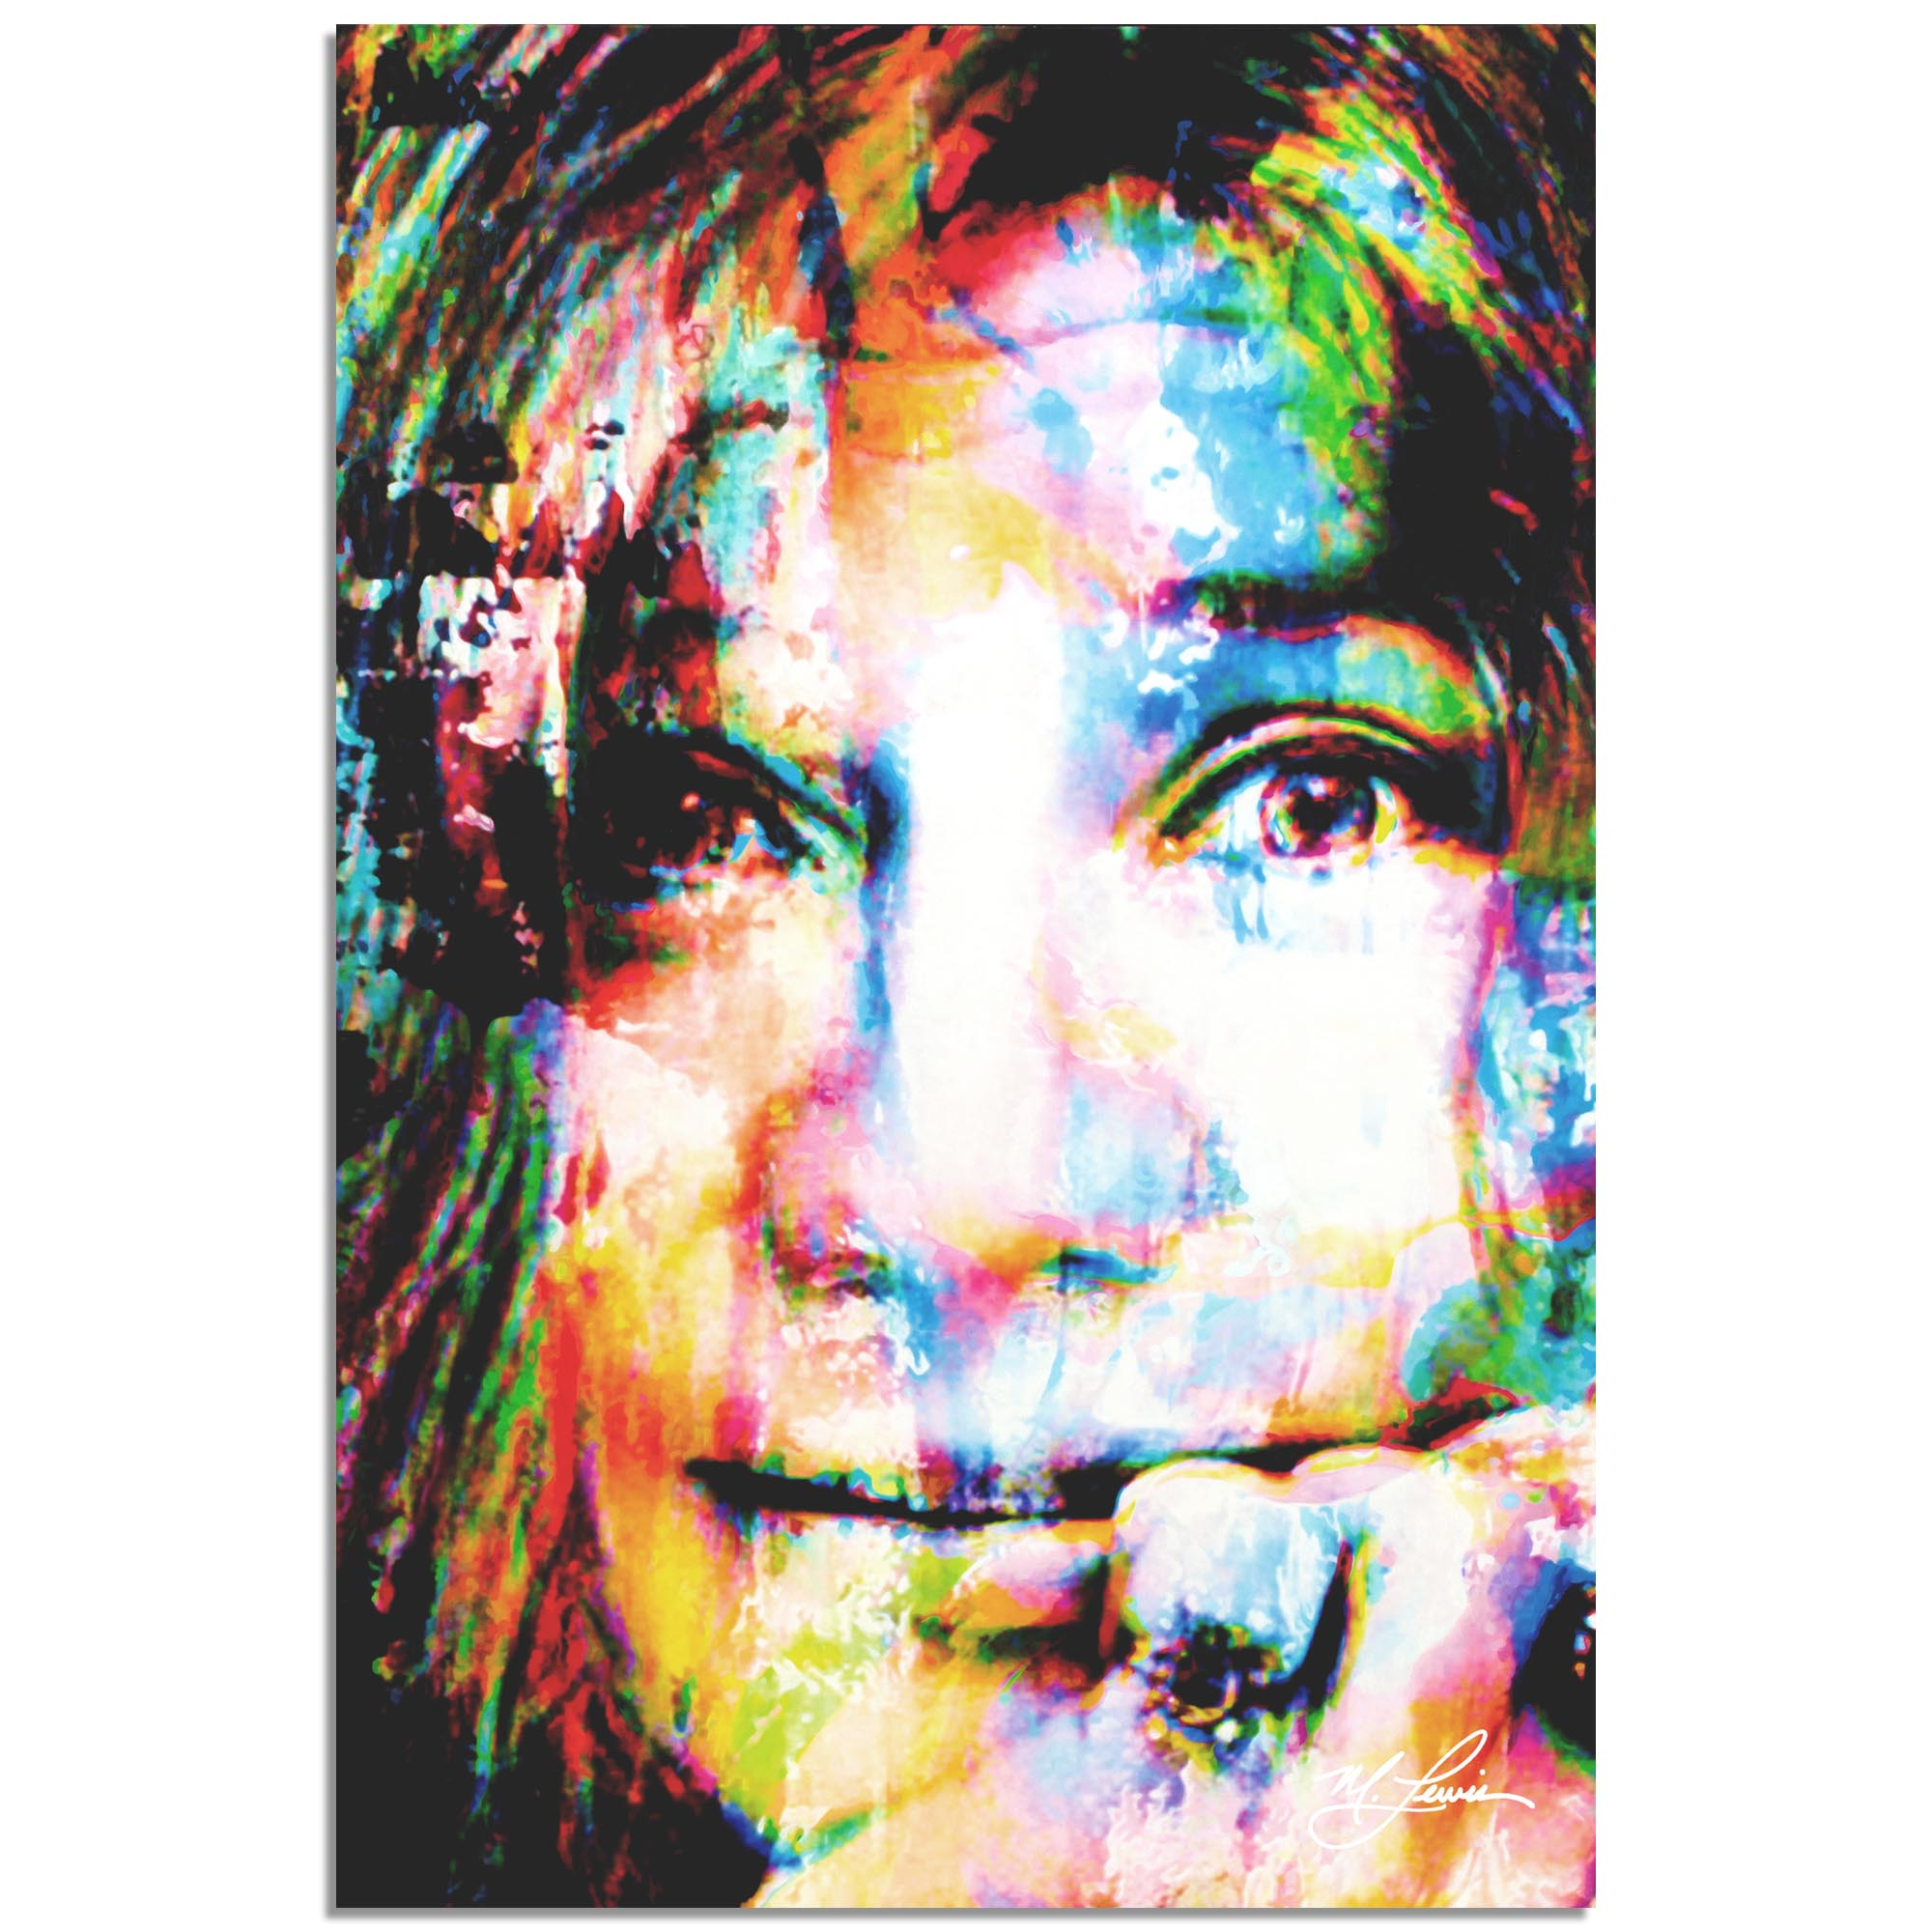 Janis Joplin Declaration of Soul by Mark Lewis - Celebrity Pop Art on Metal or Plexiglass